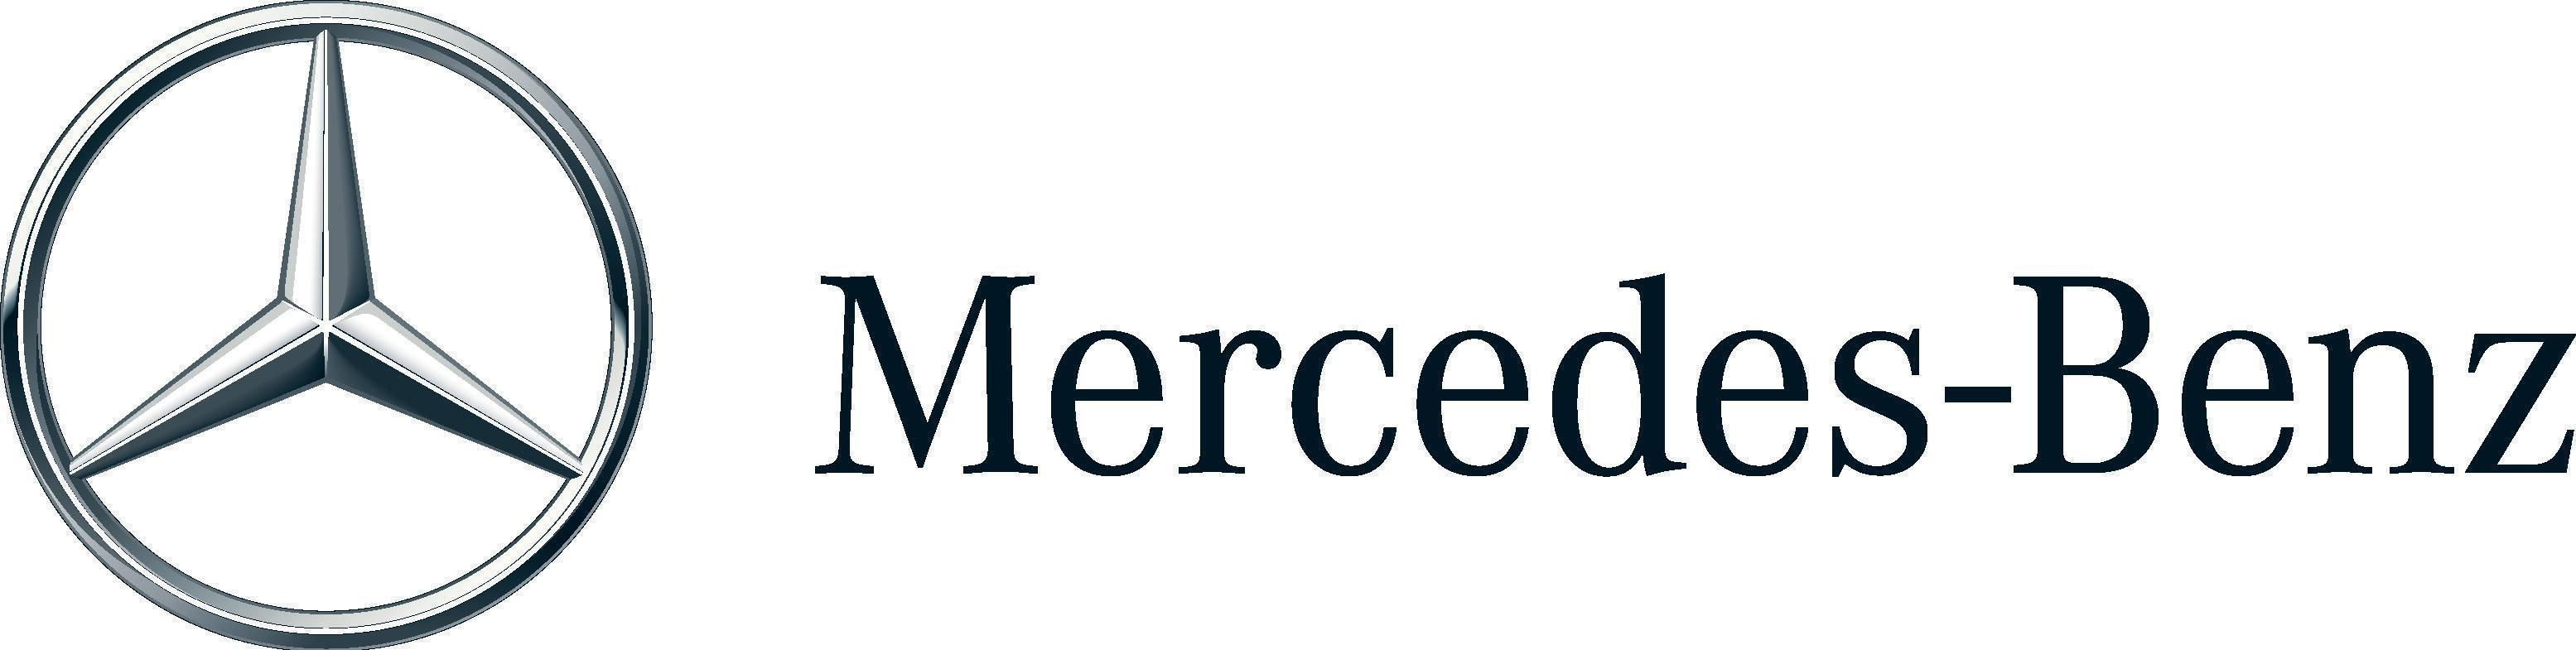 Mercedes benz entry level jobs and internships for Mercedes benz jobs